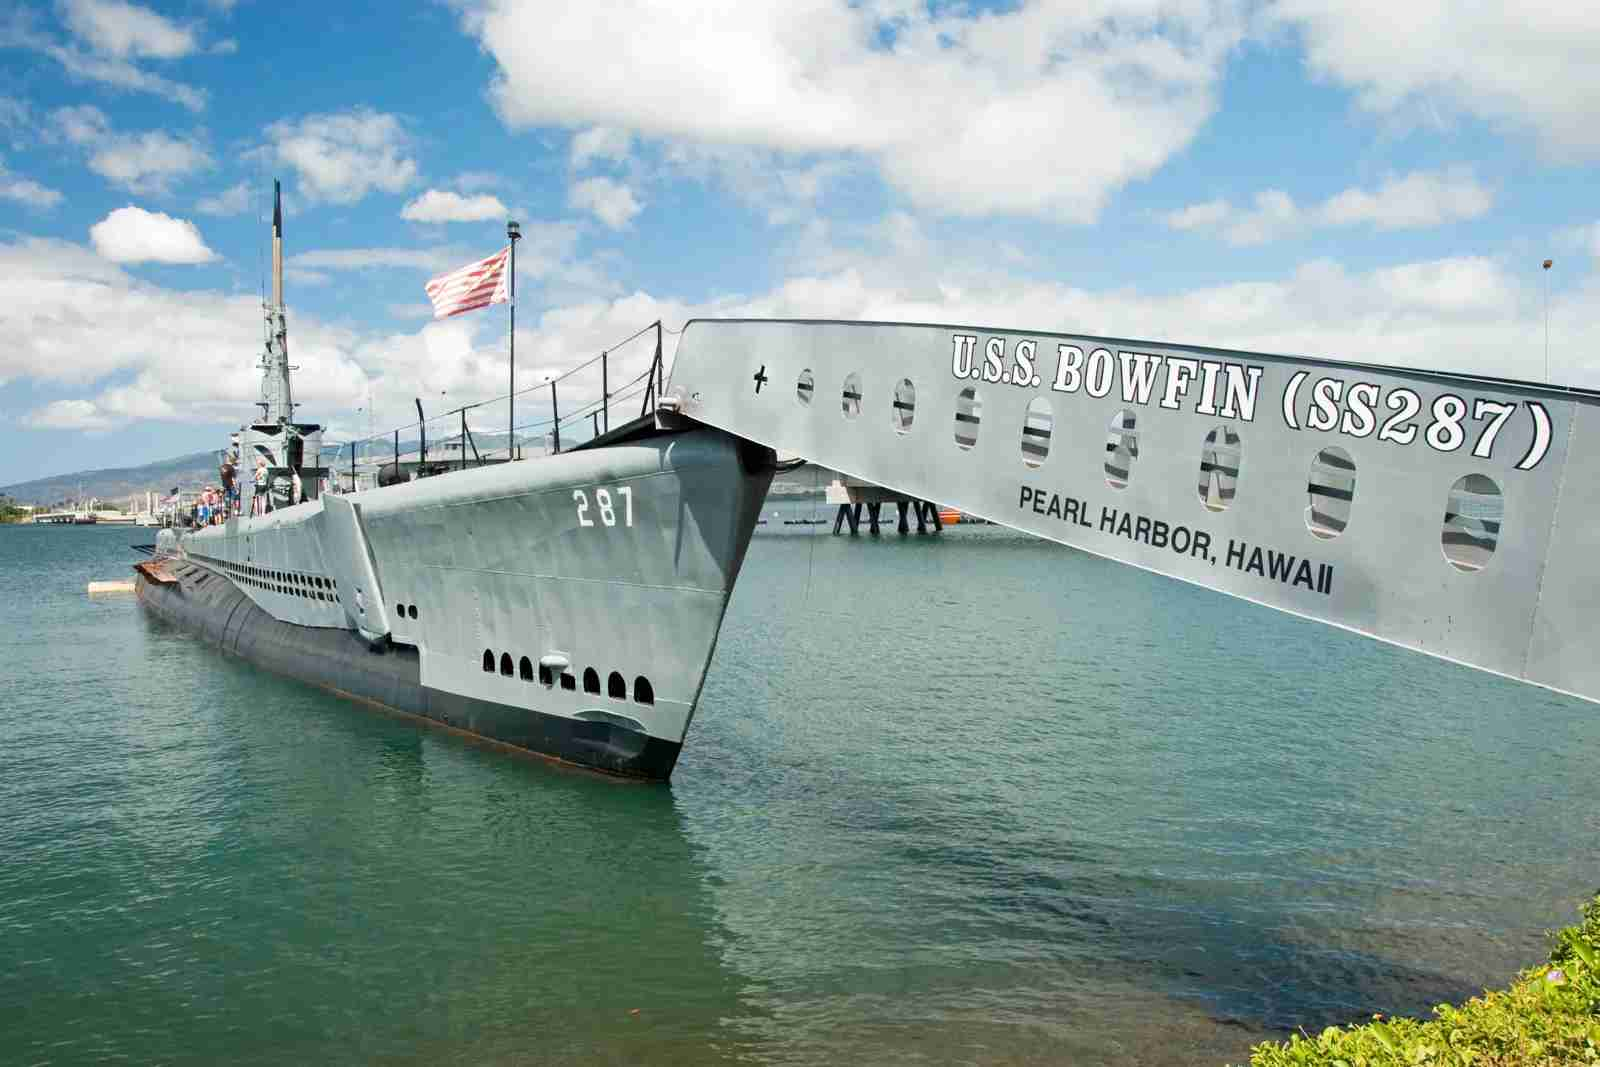 The USS Bowfin submarine in Pearl Harbor Museum is a great spot to bring kids. (Photo by Vacclav / Getty Images)